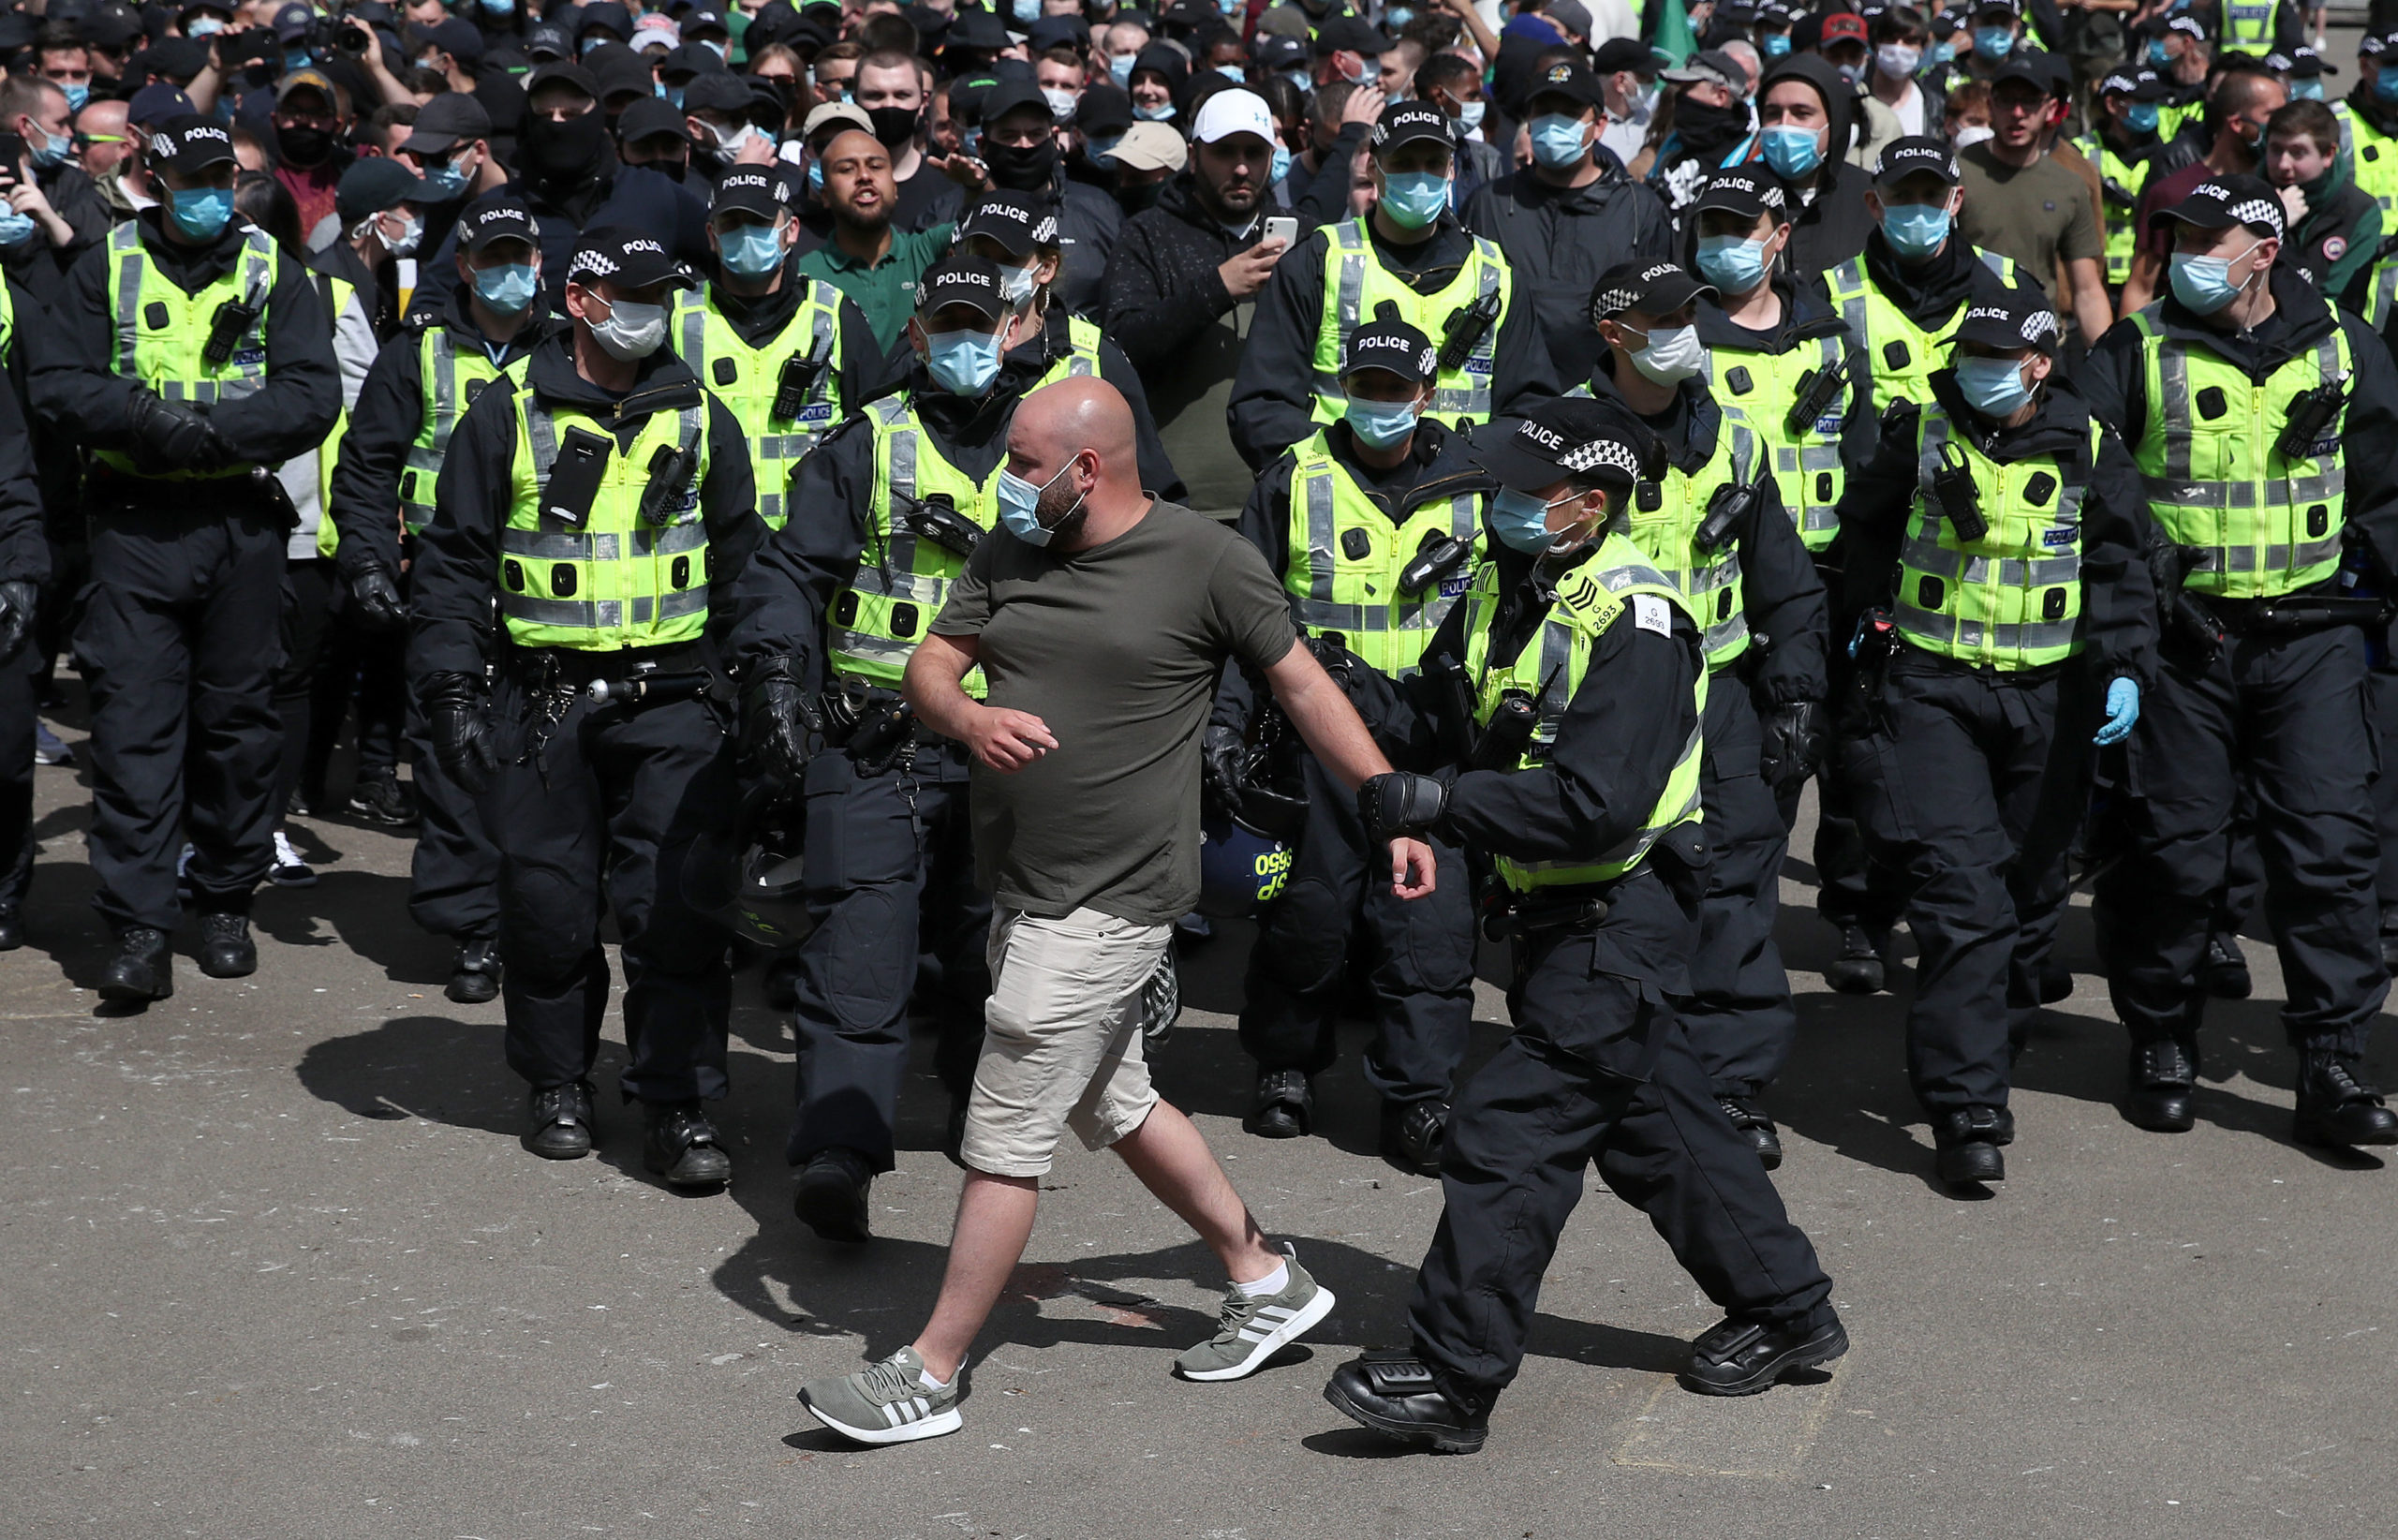 """Protesters are escorted by police from George Square in Glasgow city centre after a Glasgow Says No to Racism event aimed at """"sending a positive anti-racist message from Glasgow's George Square to the world on World Refugee Day""""."""